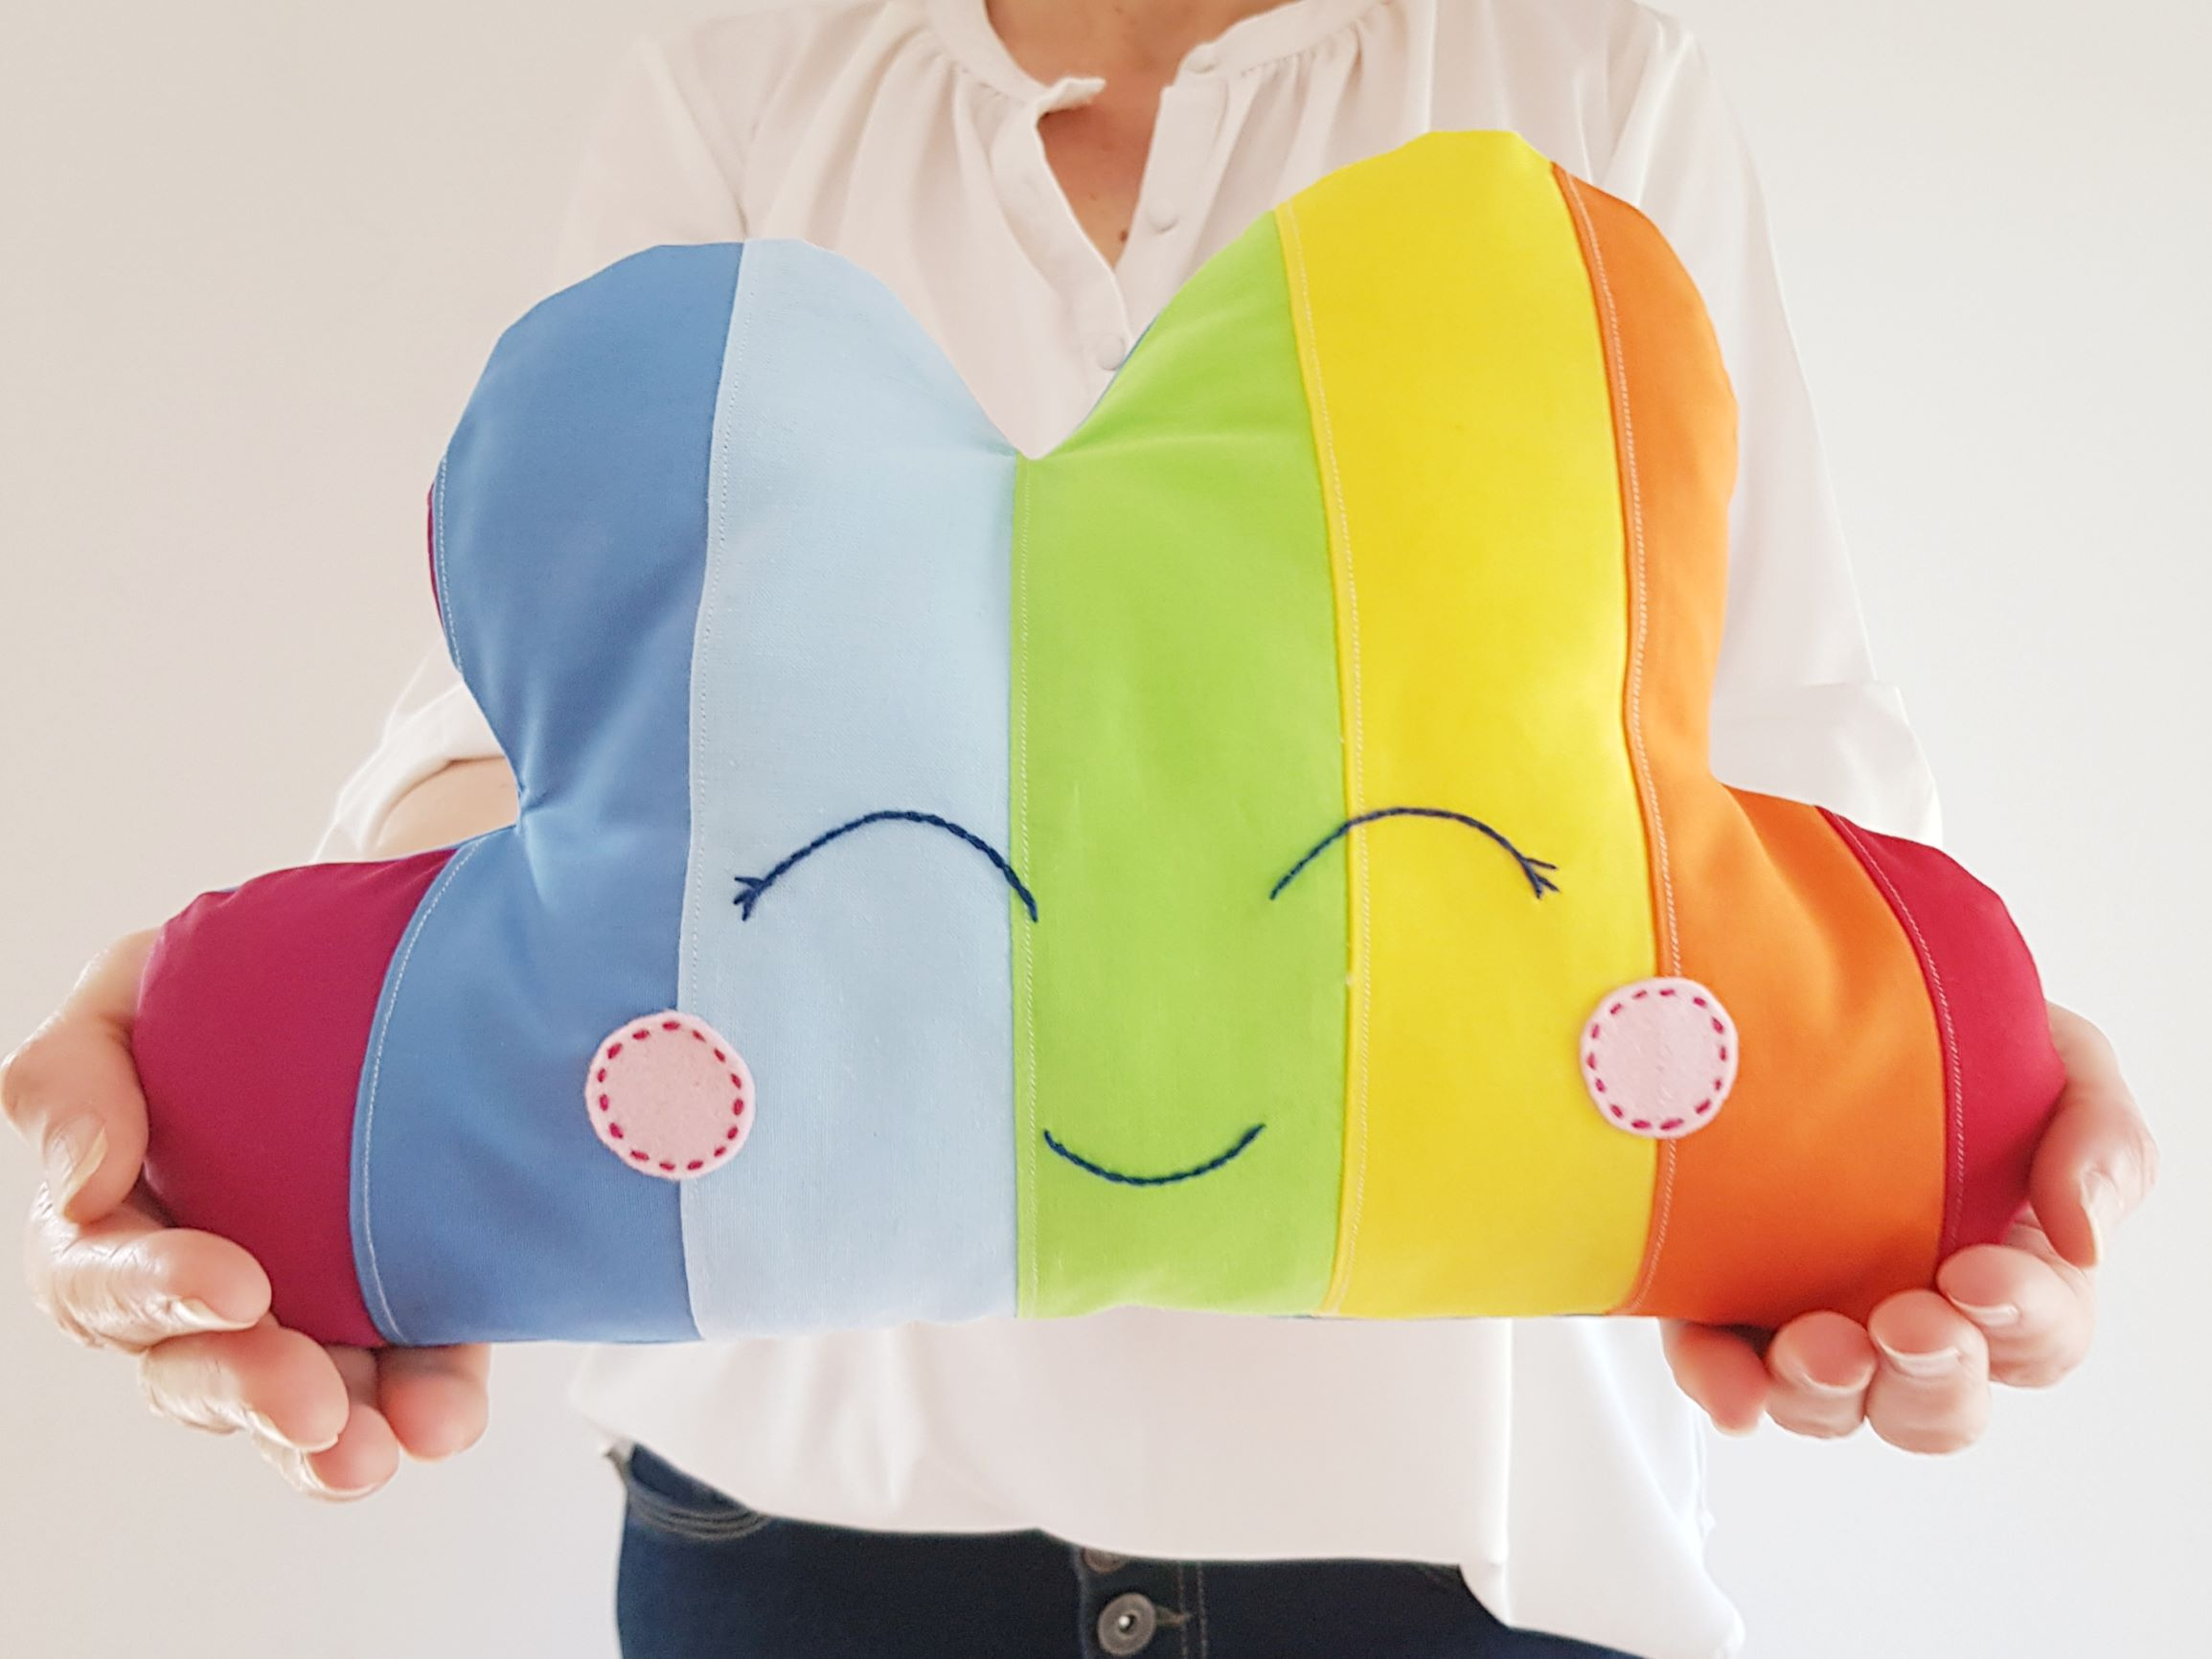 Rainbow cloud pillow Sewing pattern PDF Instant dounload _easy sewing project for beginners_ 6s